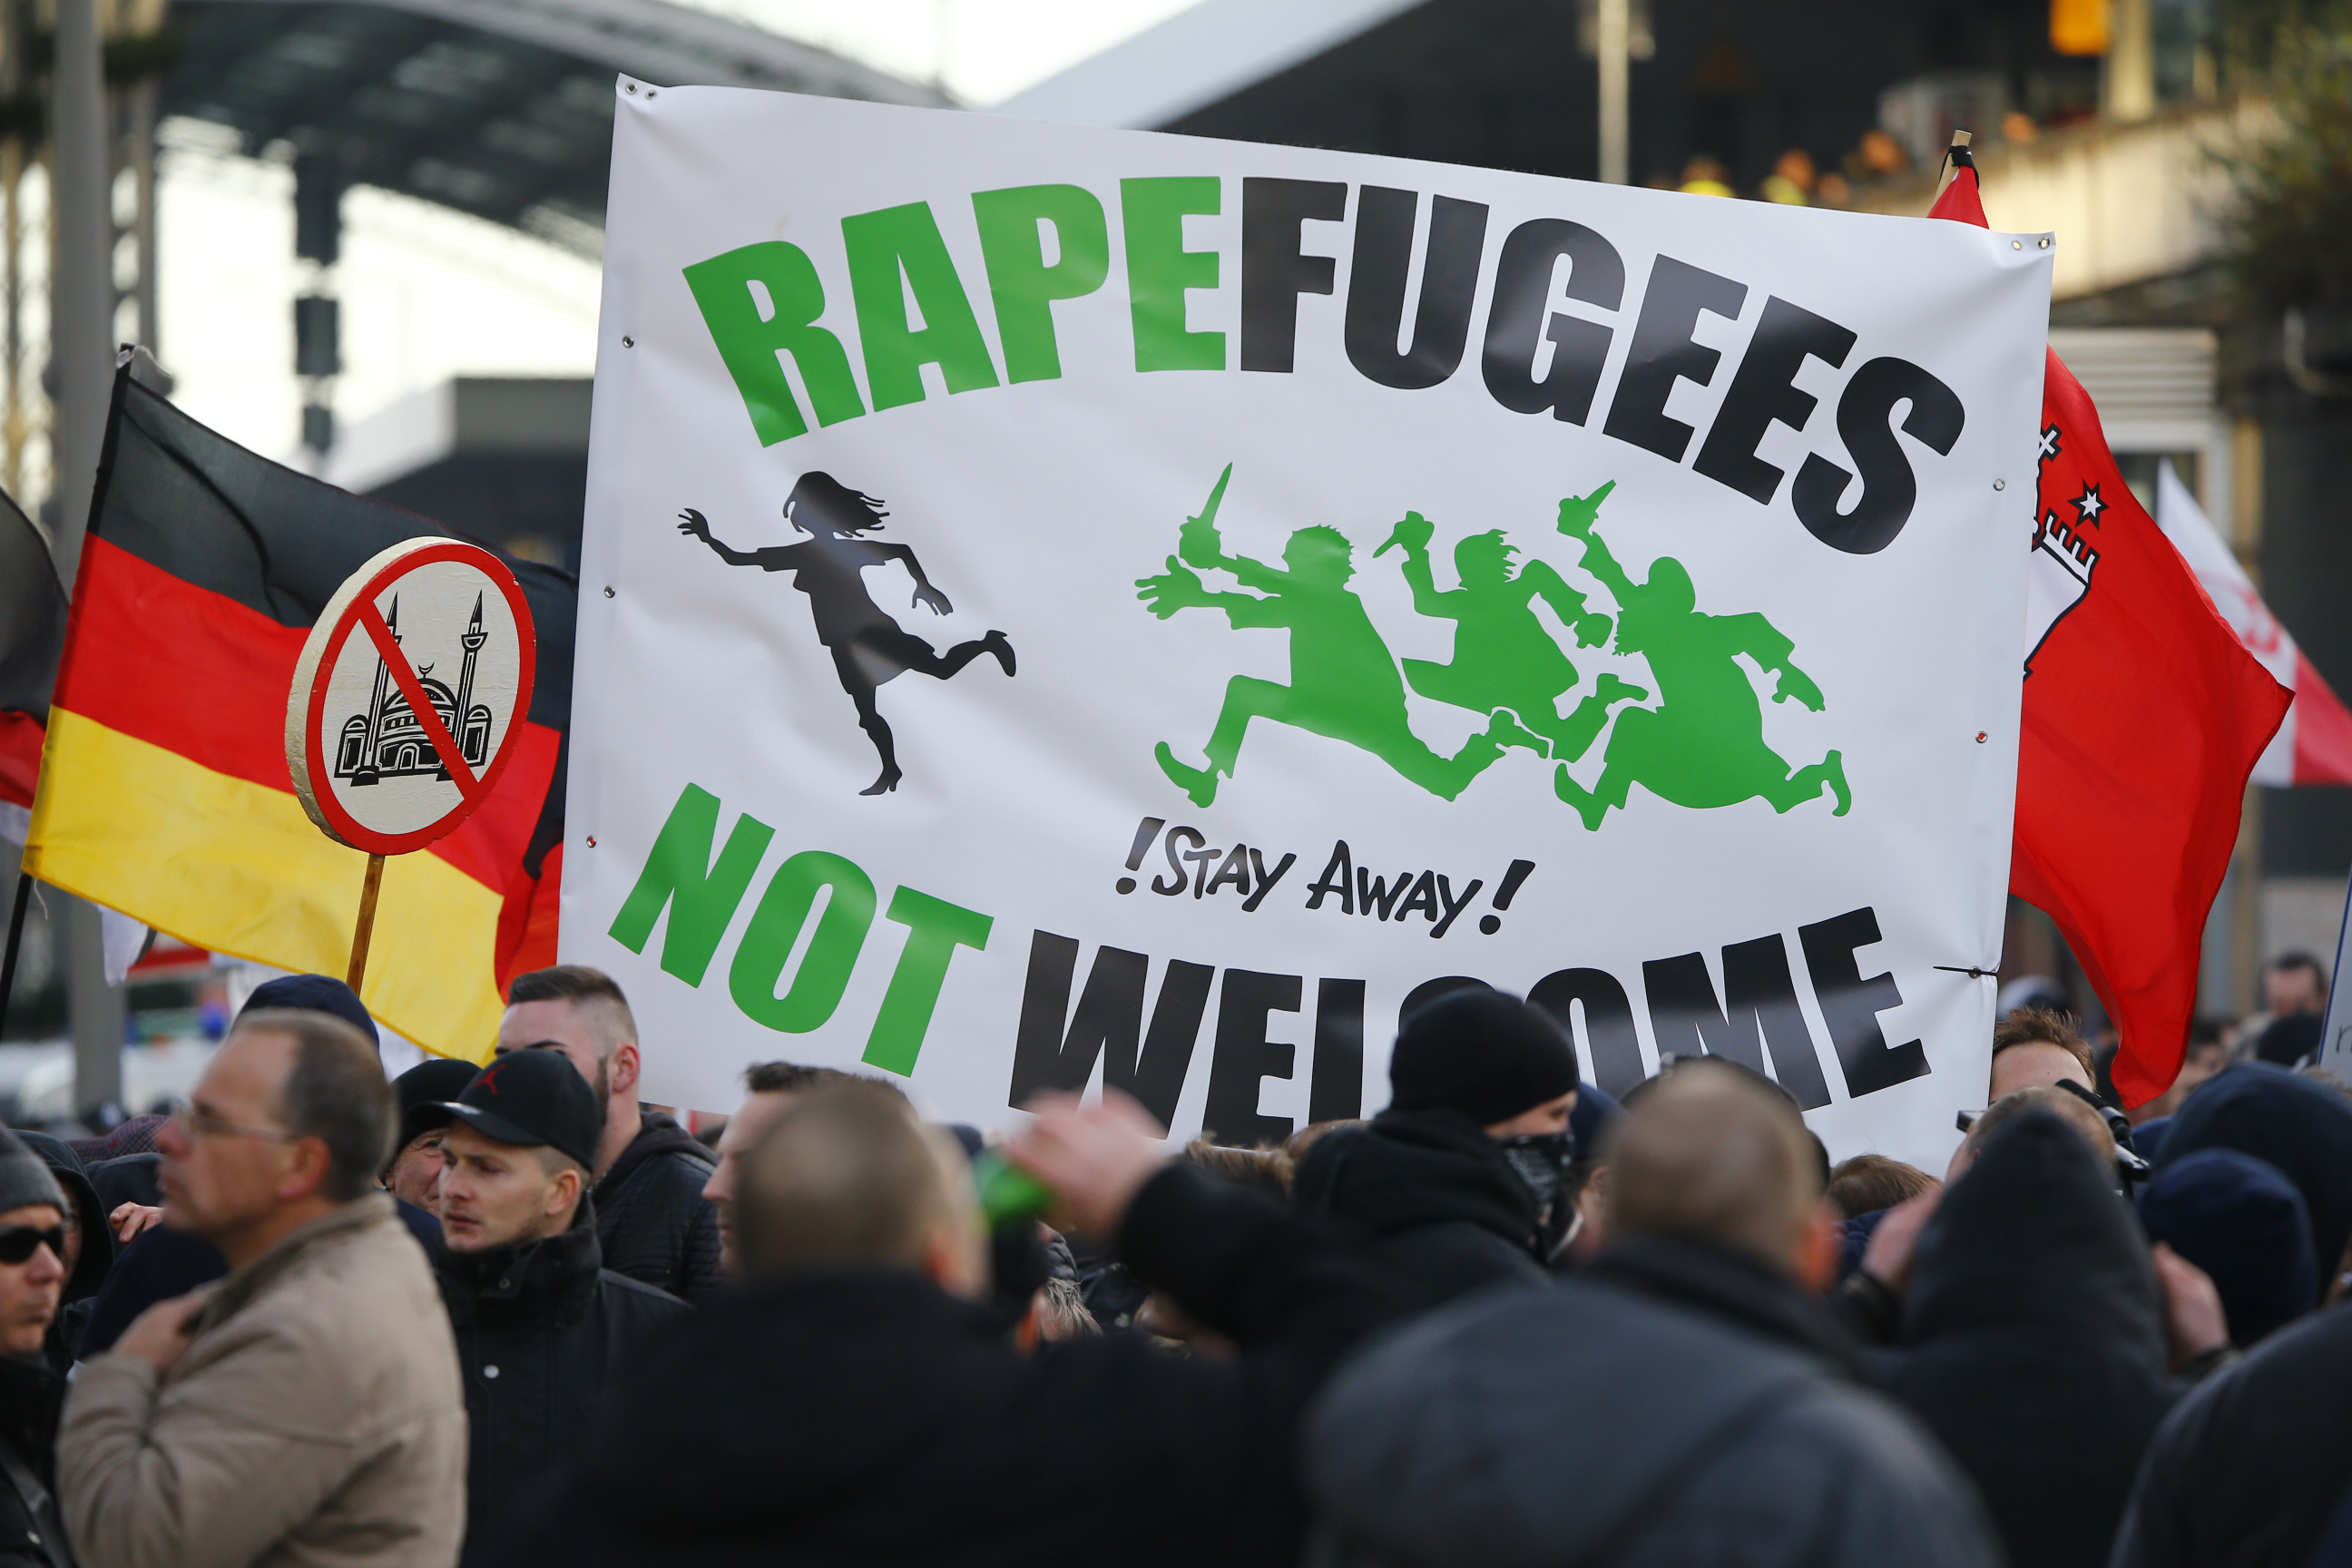 Supporters of anti-immigration right-wing movement PEGIDA (Patriotic Europeans Against the Islamisation of the West) take part in in demonstration rally, in reaction to mass assaults on women on New Year's Eve, in Cologne, Germany, January 9, 2016. REUTERS/Wolfgang Rattay - RTX21MZW